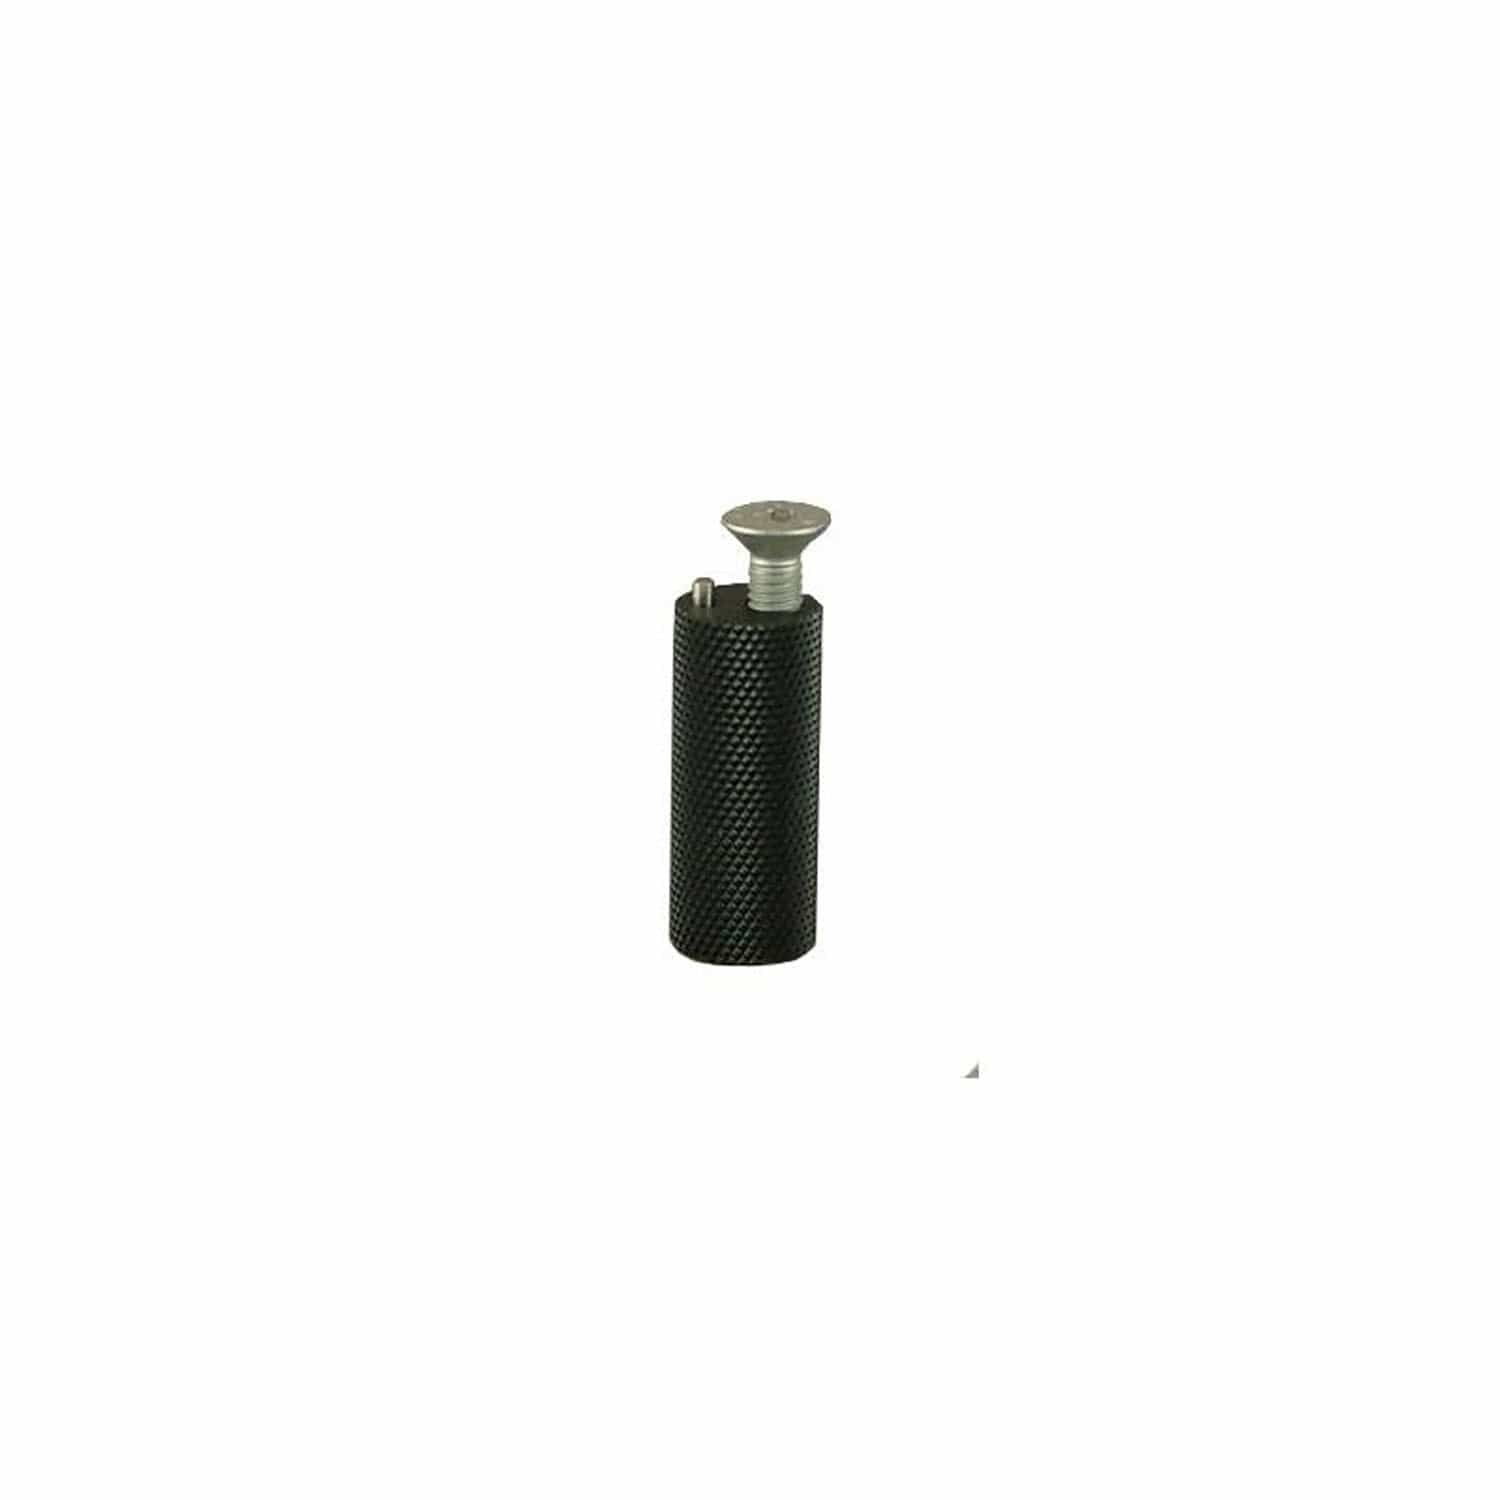 08-4899 Adjustable Pedal Tip- Black W/ FH Bolt (04-FH620Z) - Woodcraft Technologies - Motorcycle Parts